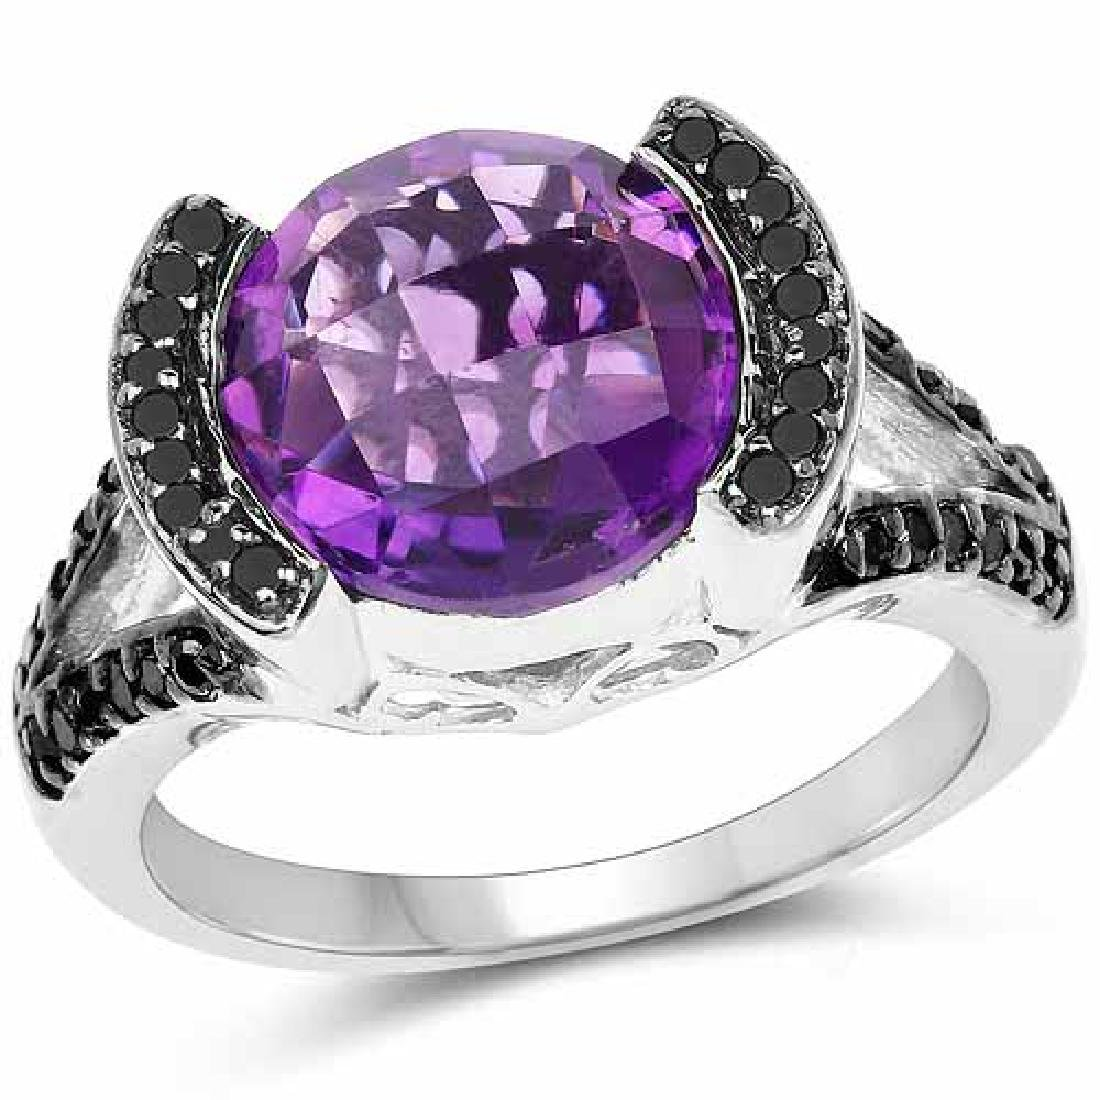 3.24 Carat Genuine Amethyst Black Diamond and White D